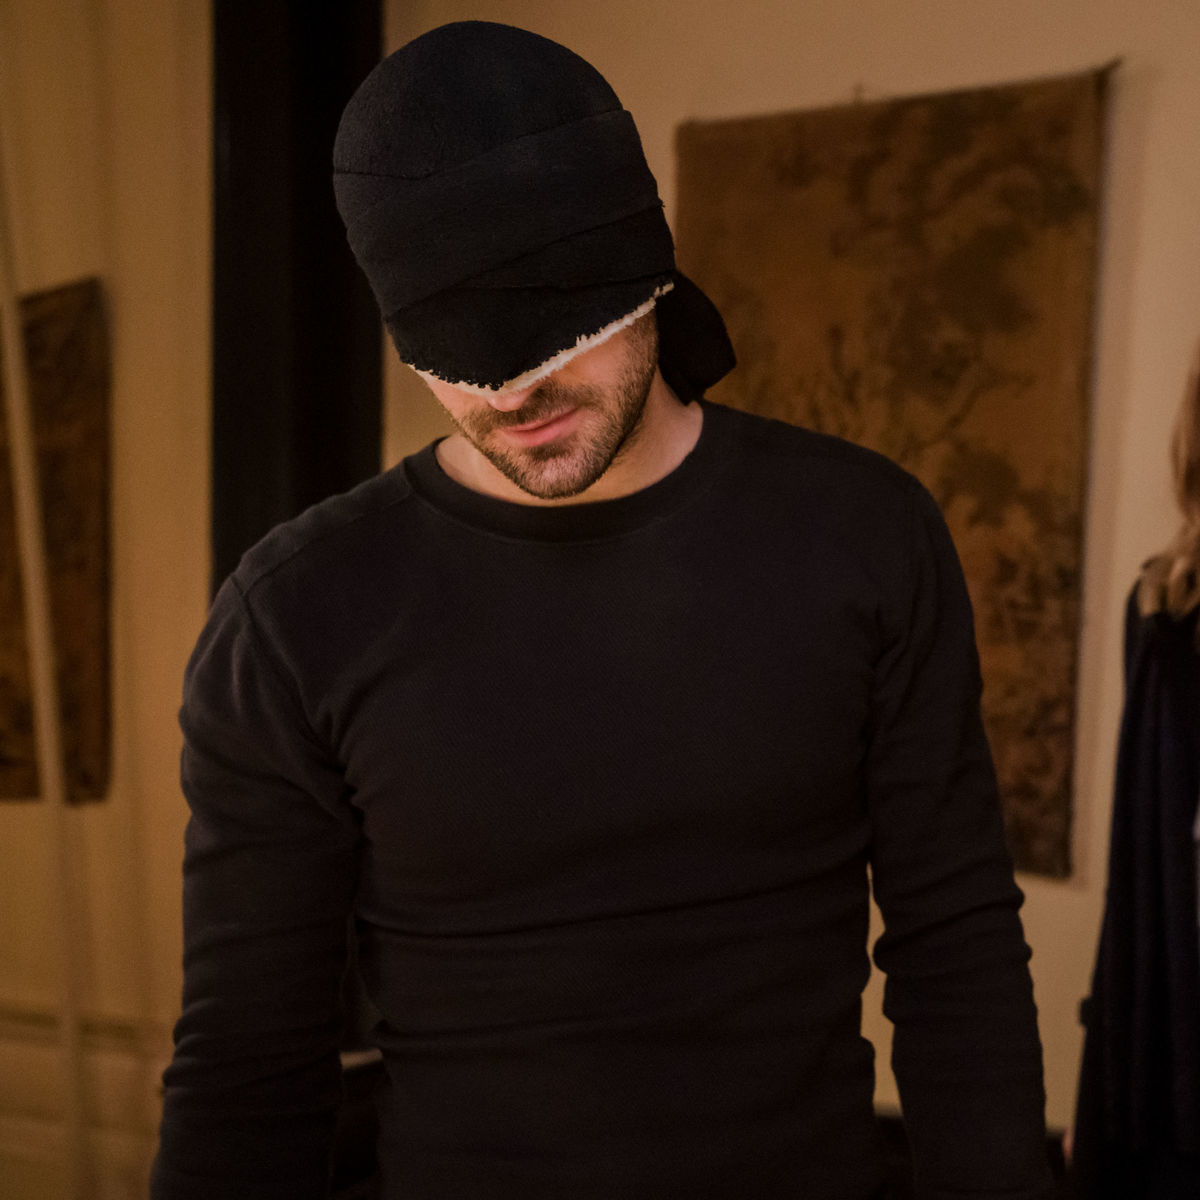 Netflix Cancels Daredevil, Character To 'Live On In Future Projects'